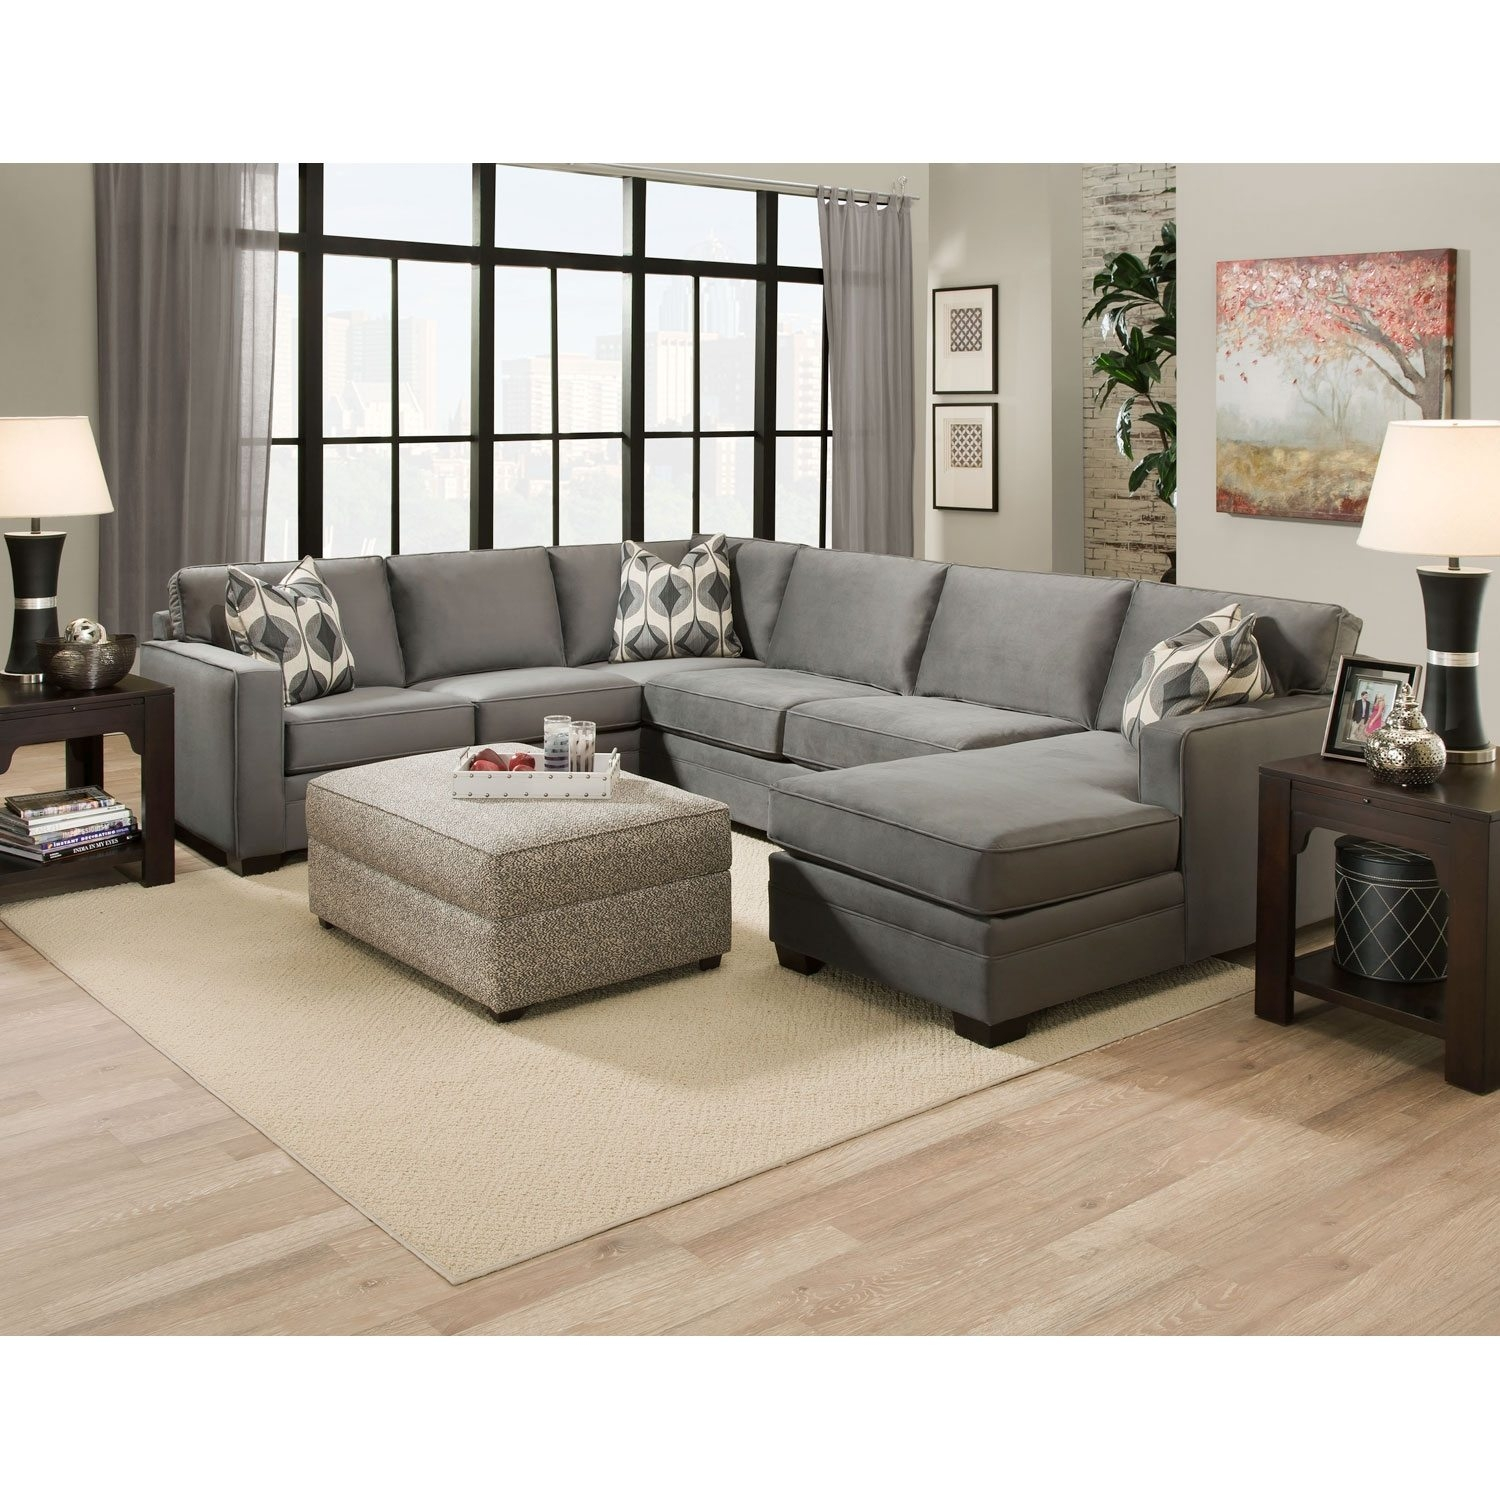 Popular Photo of Durable Sectional Sofa